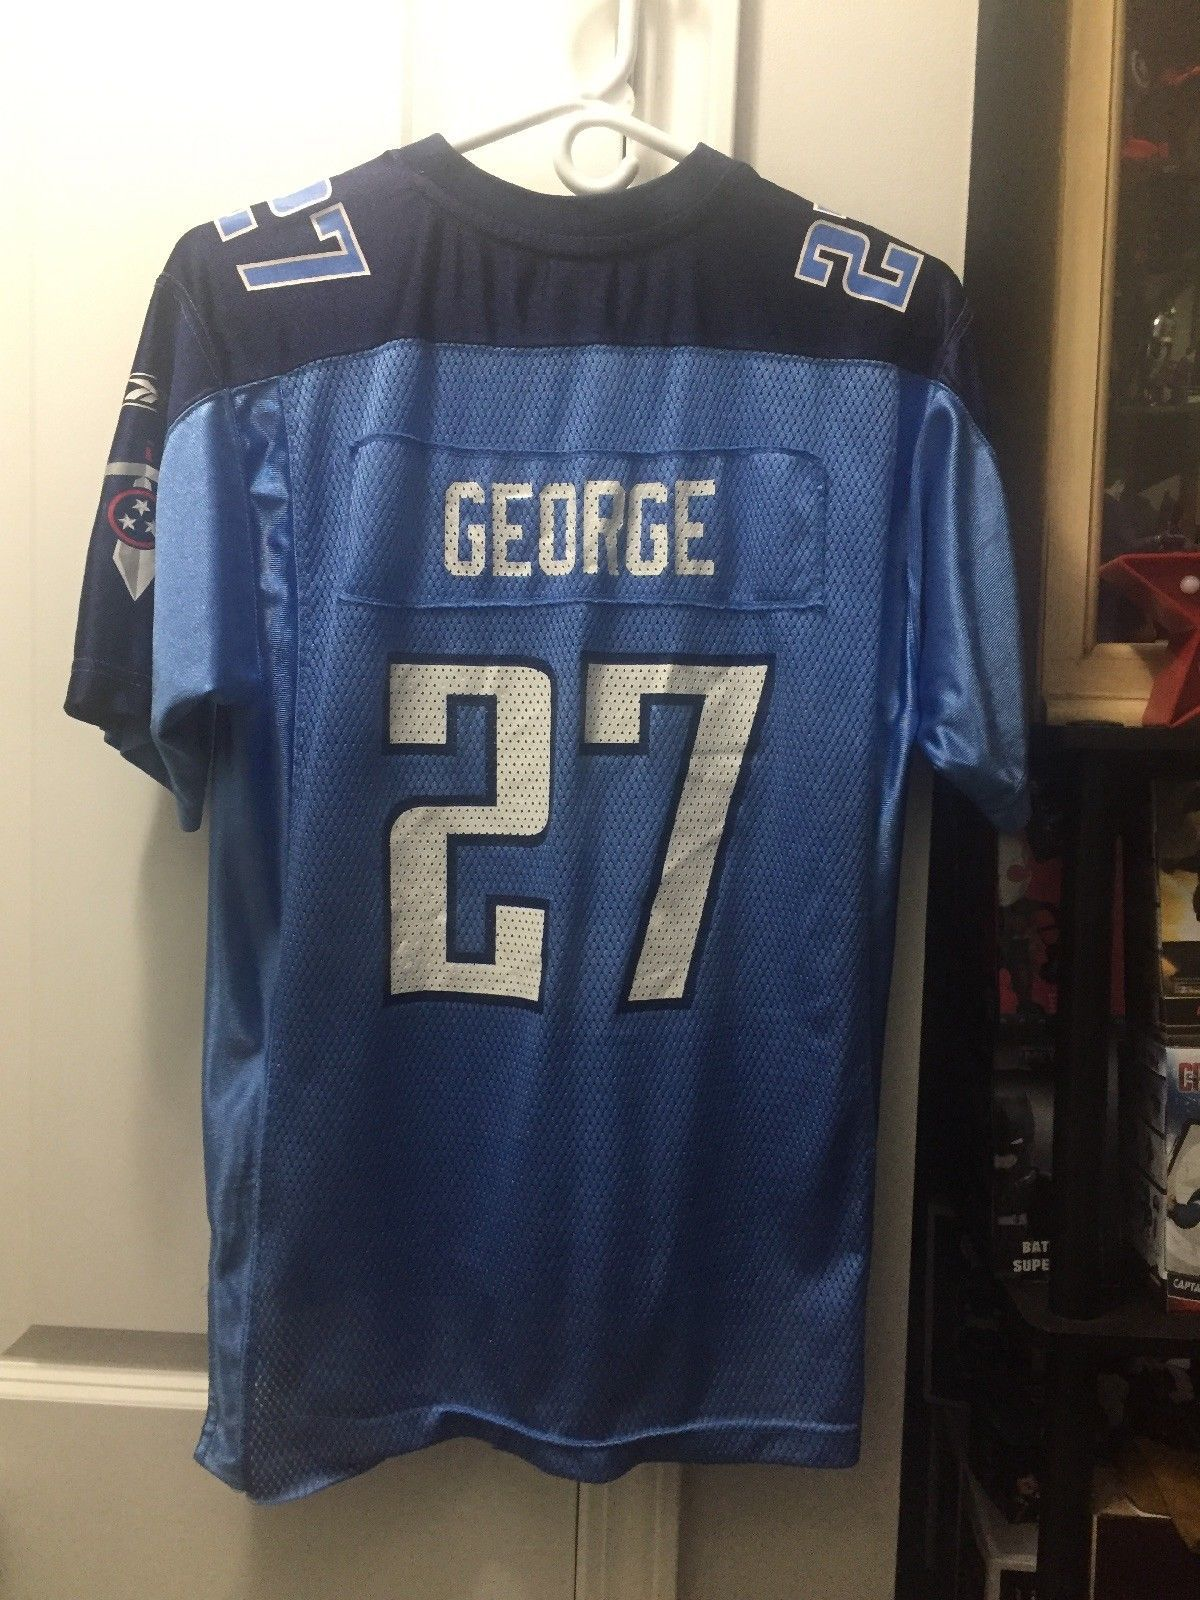 9d0dc68b Tennessee Titans - Eddie George - Youth Size Large 14-16 Reebok NFL ...